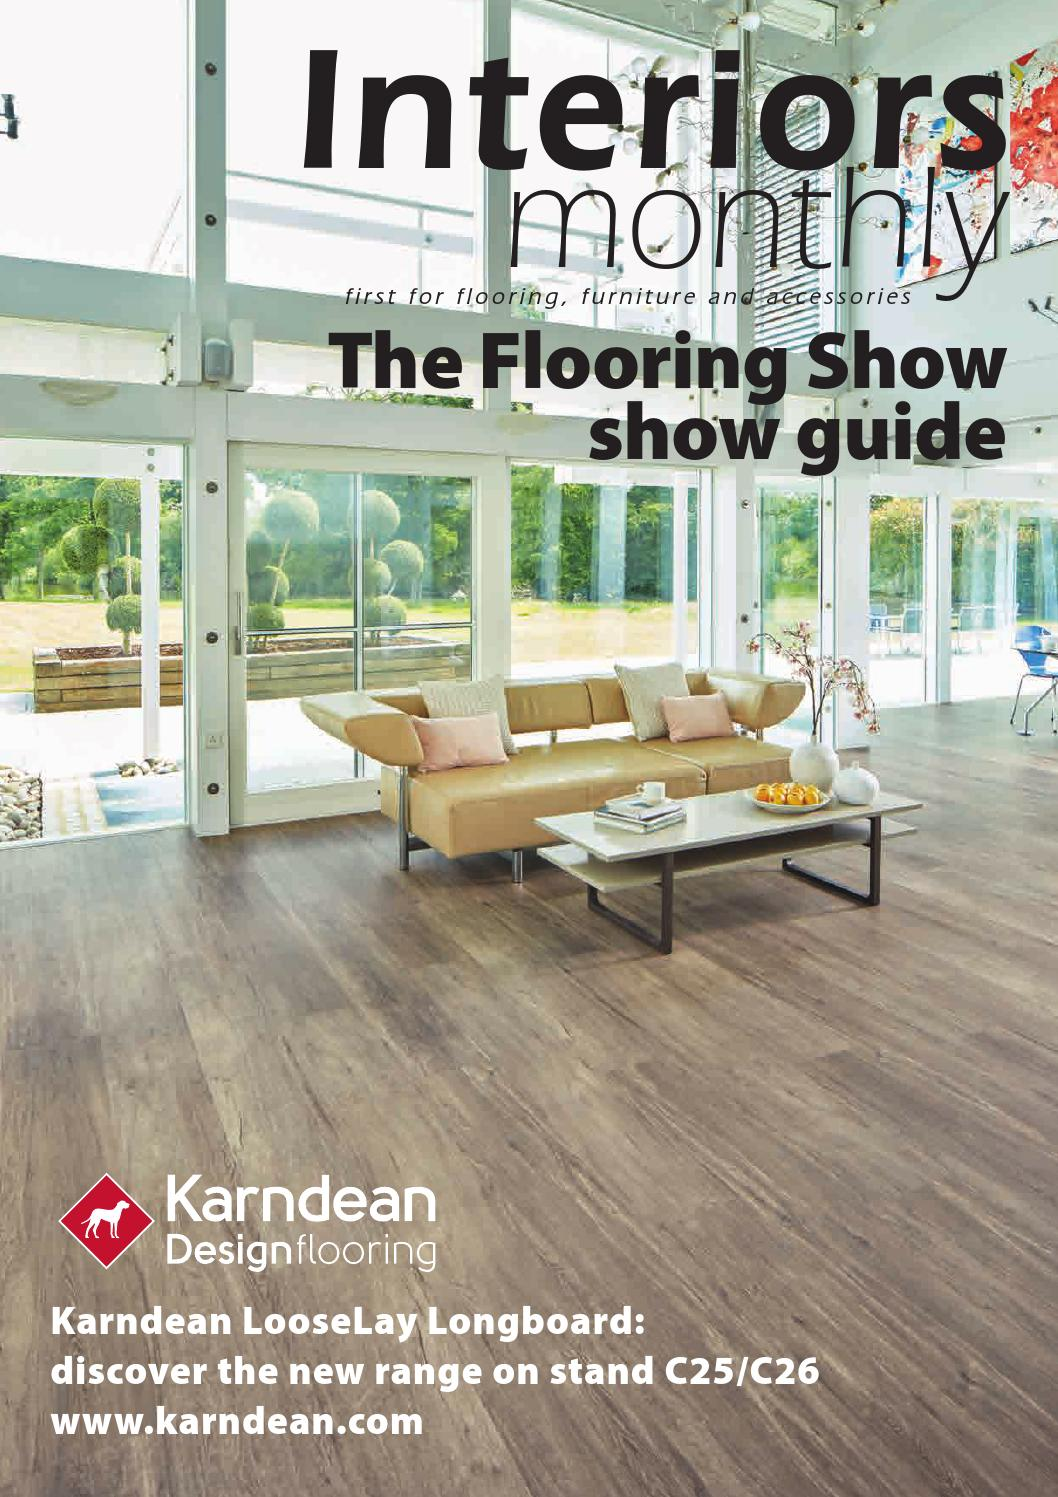 Interiors Monthly The Flooring Show 2016 Show Guide By